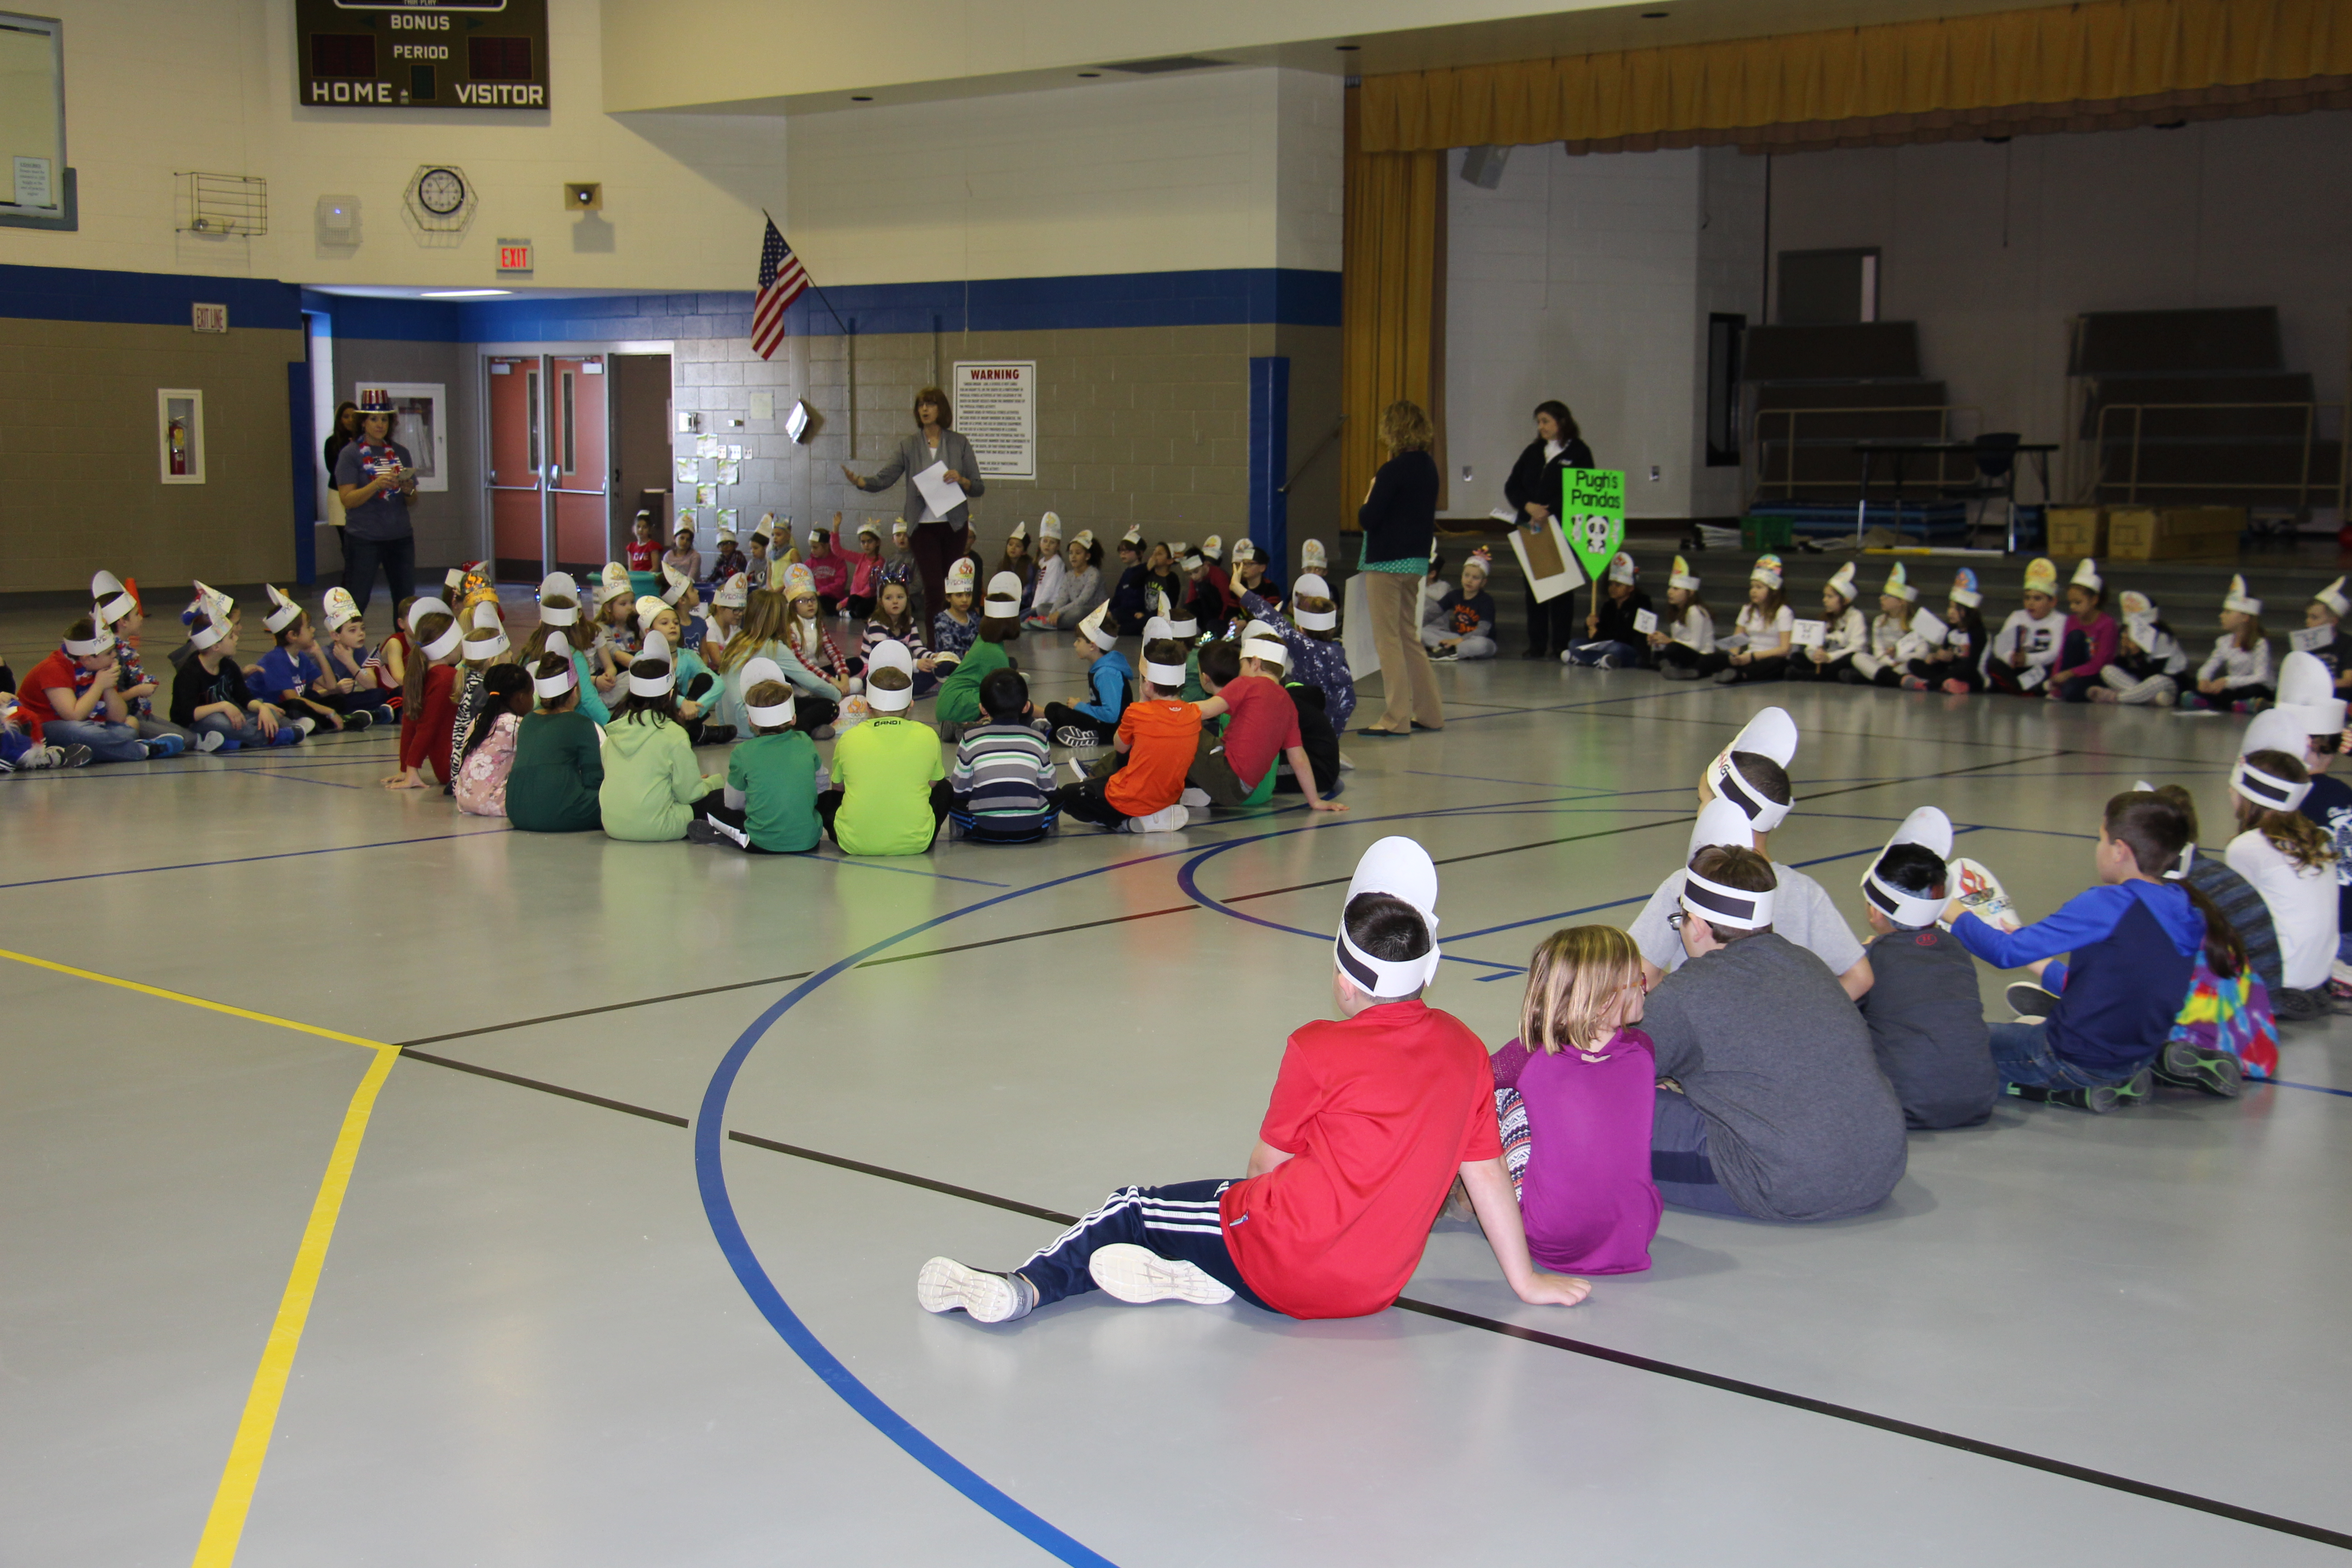 Opening ceremony in Kolling's gym for the Kolling Winter Olympics